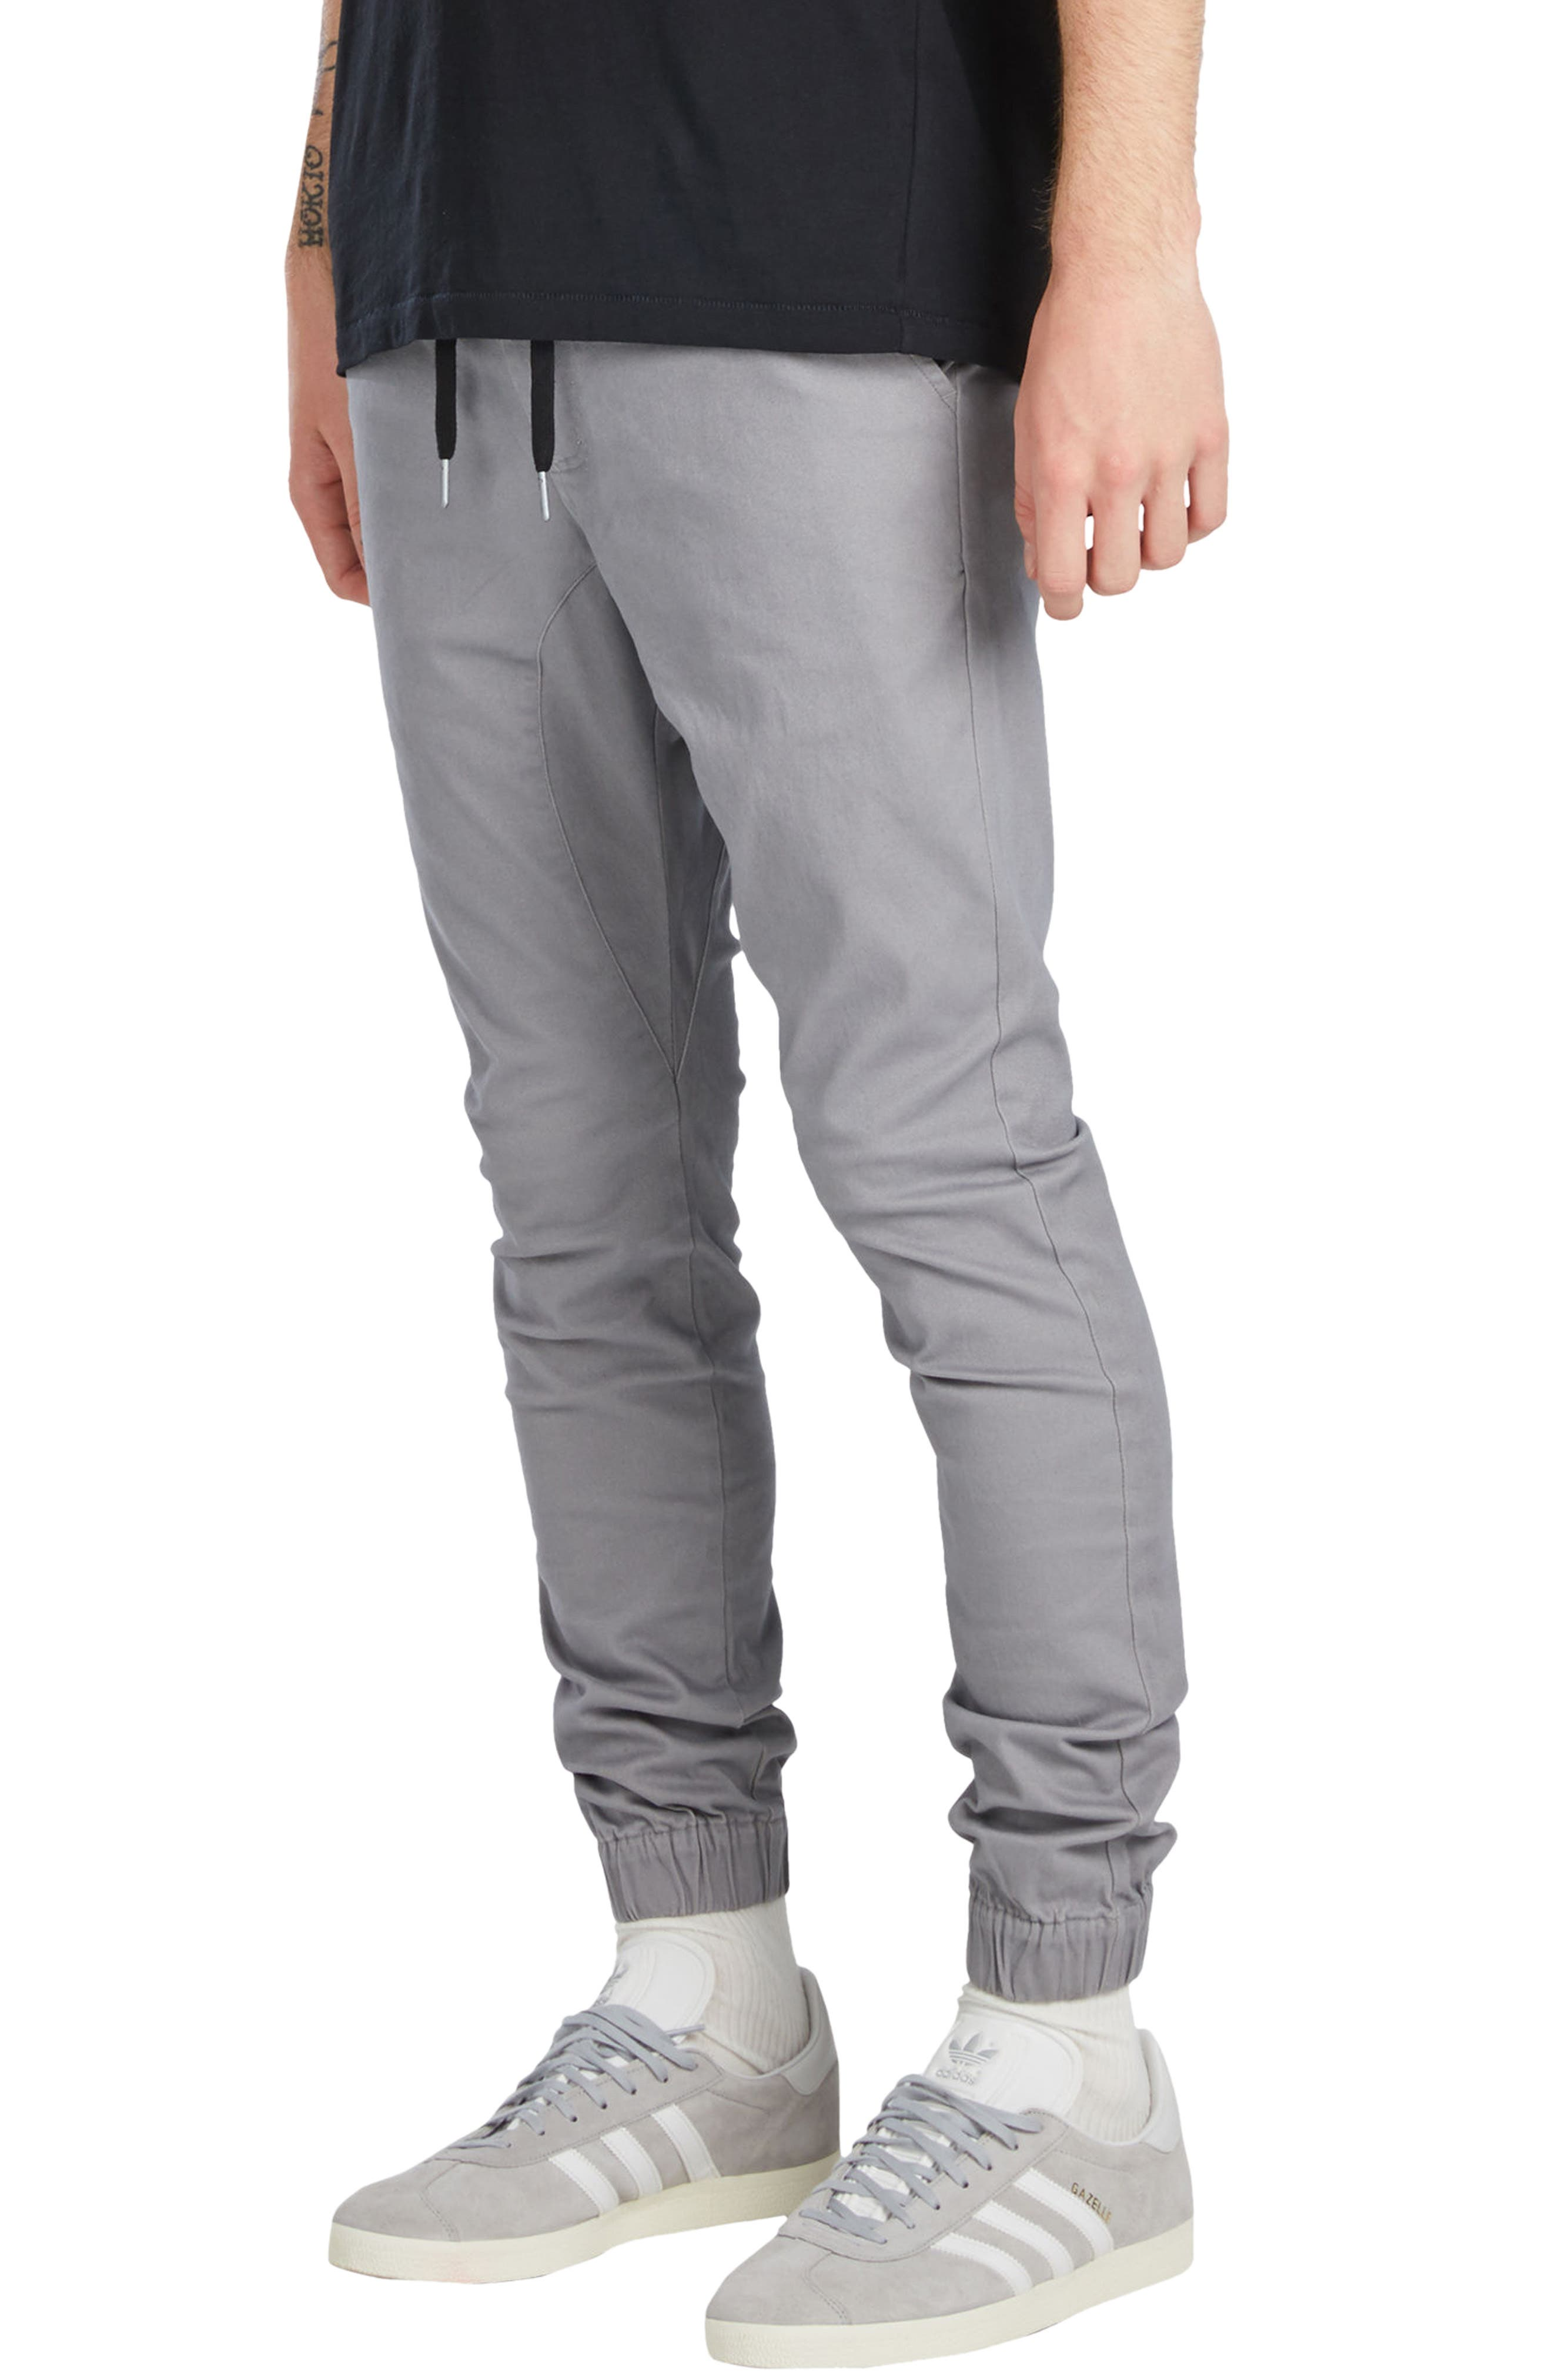 Sureshot Jogger Pants,                             Alternate thumbnail 3, color,                             CEMENT